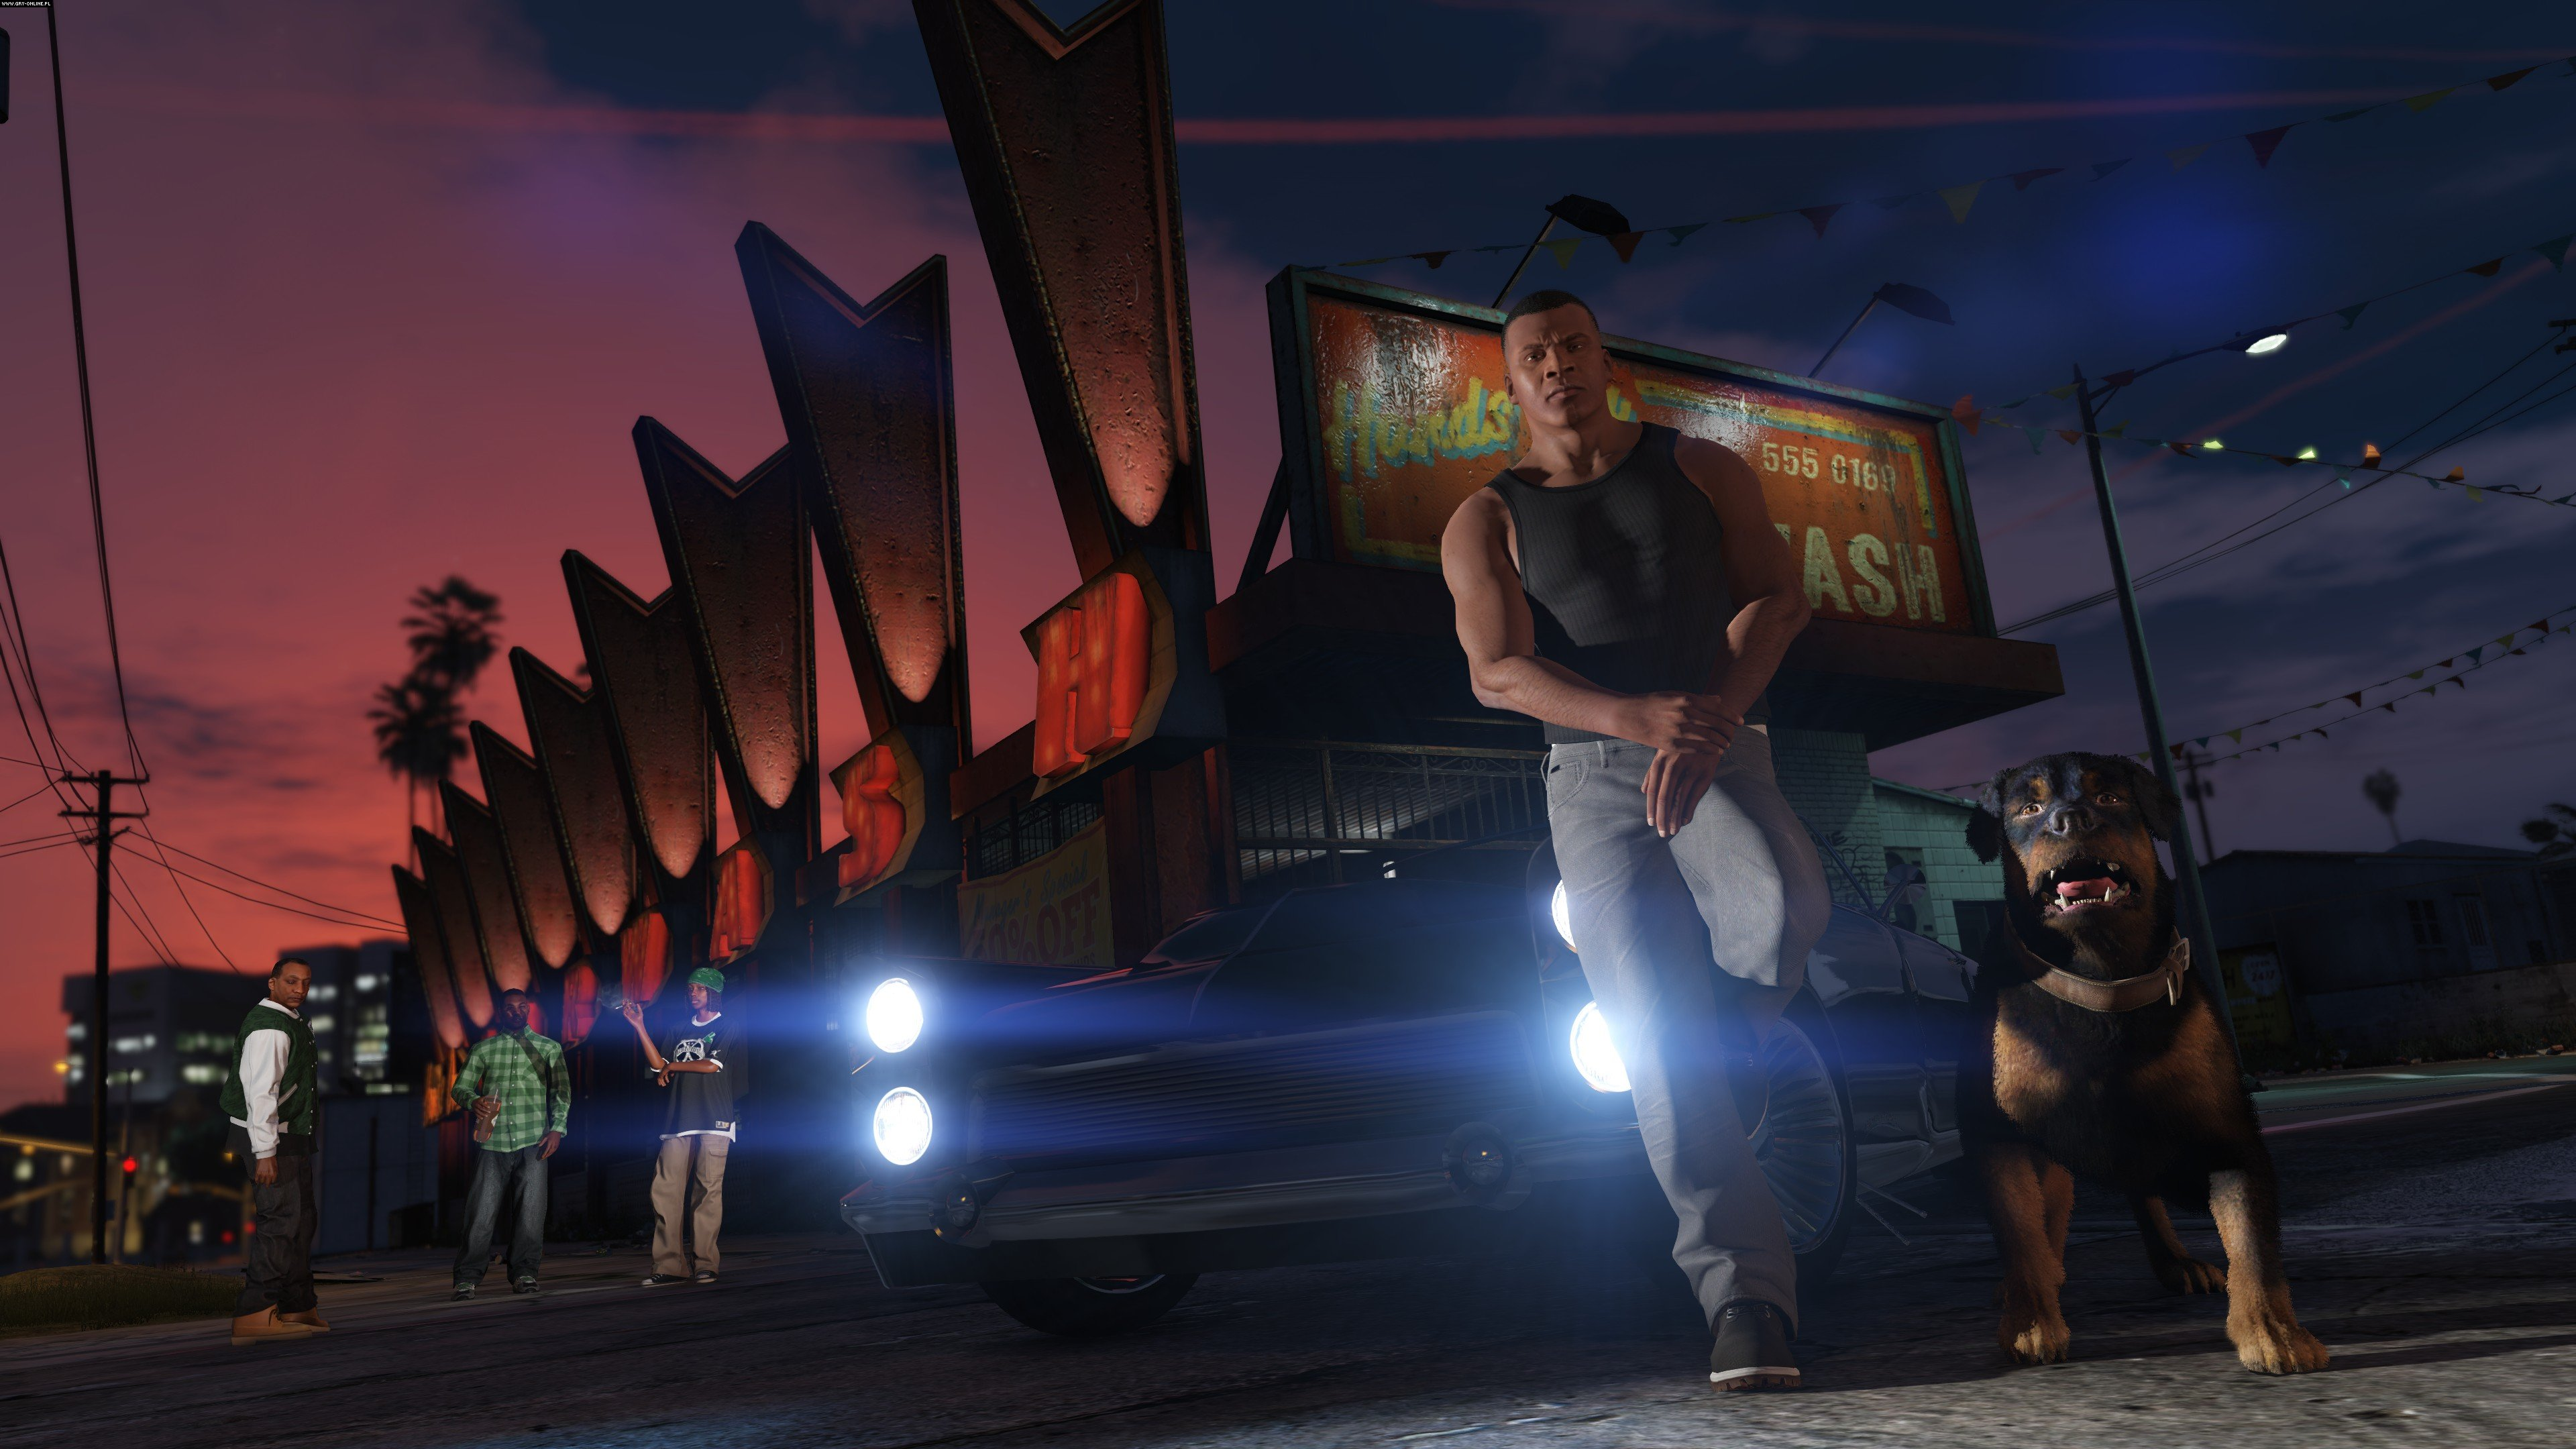 Grand Theft Auto V PC Games Image 1/396, Rockstar Games